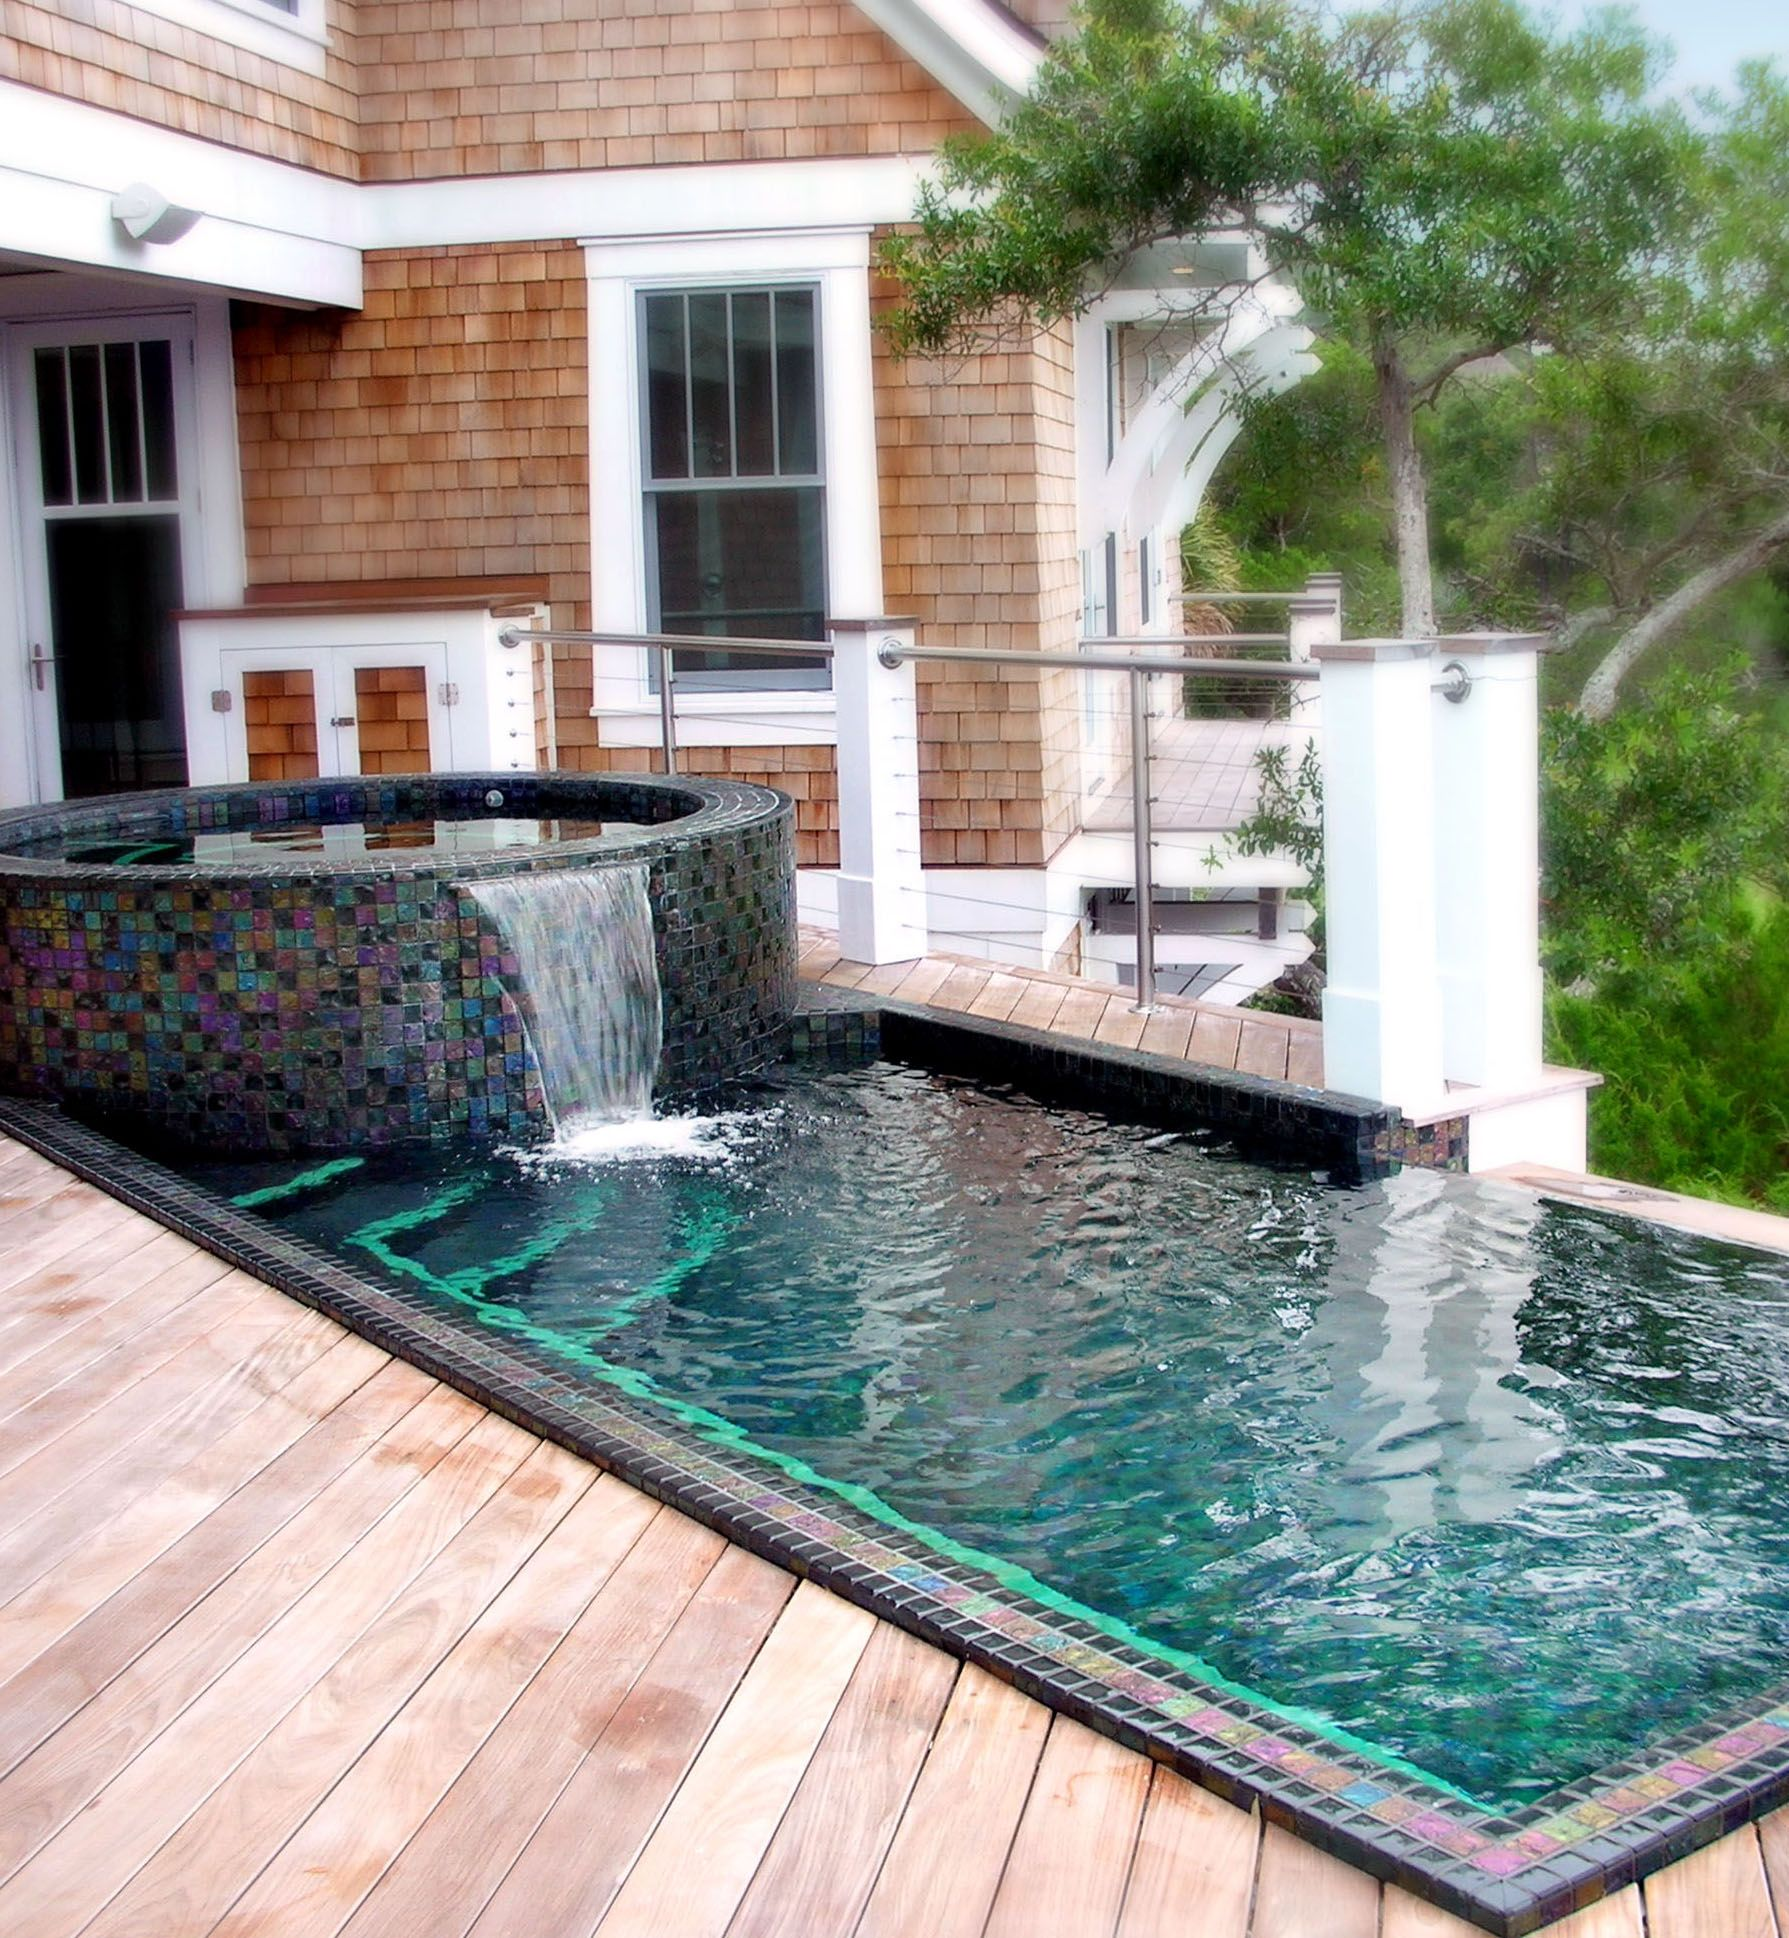 Stainless steel pool and spa on a beautiful home deck ...